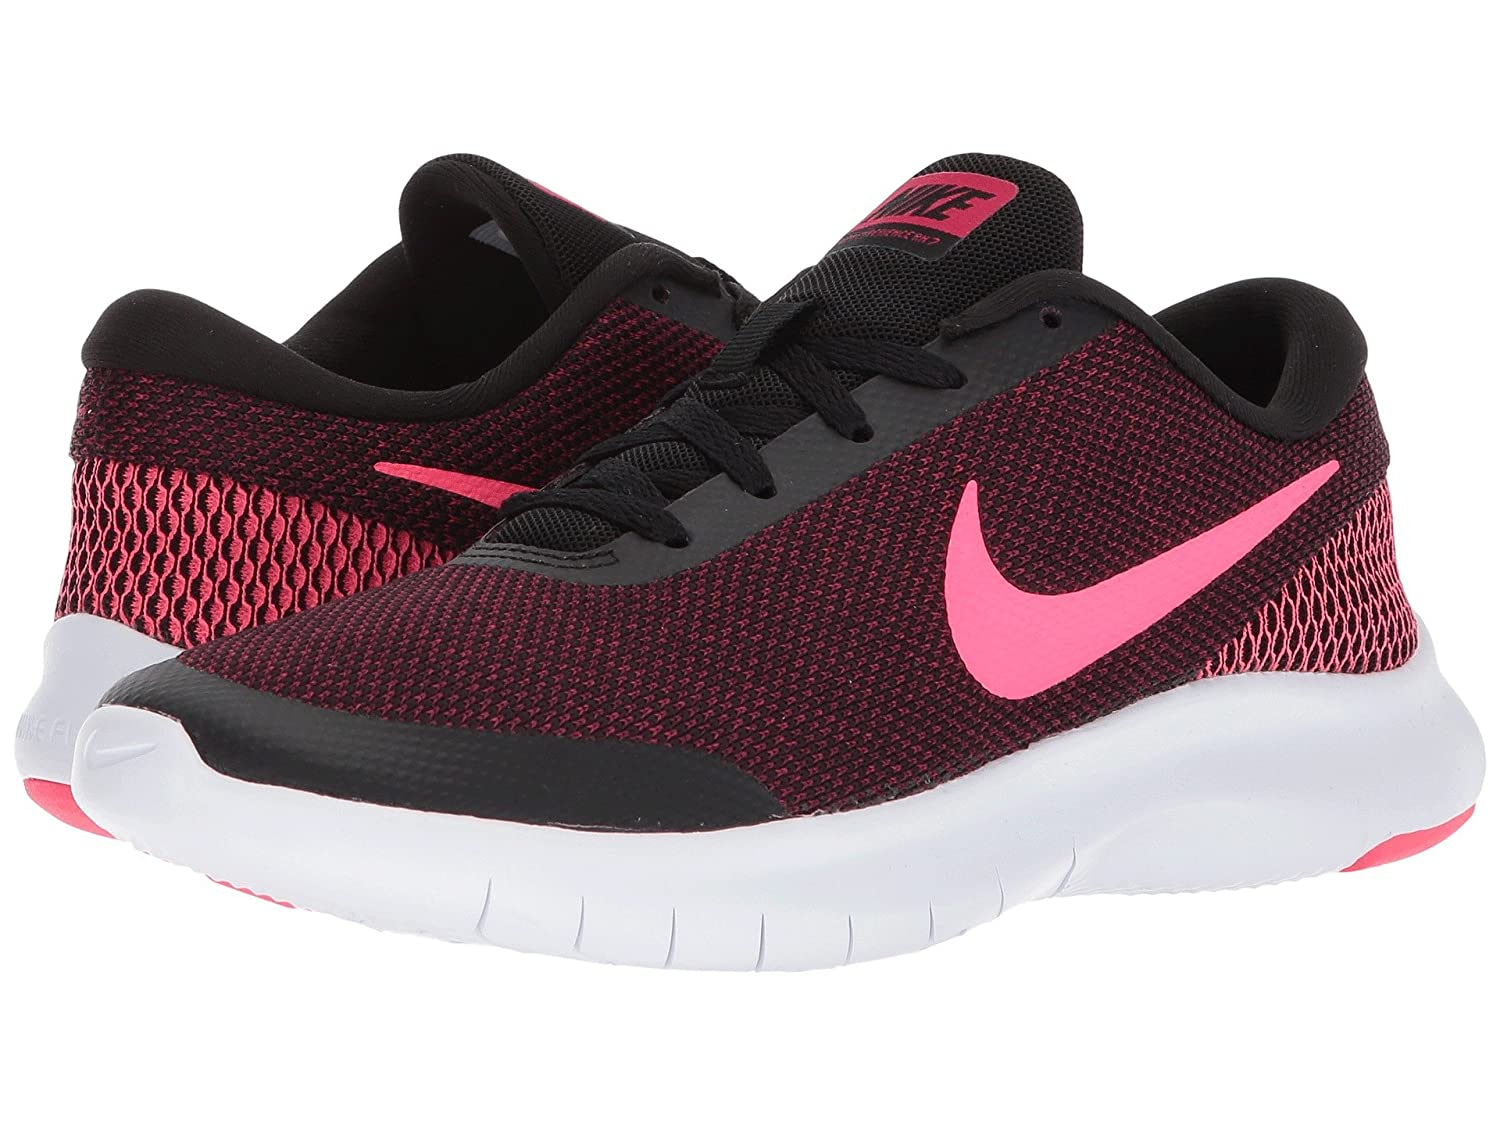 [NIKE(ナイキ)] レディーステニスシューズスニーカー靴 Flex Experience RN 7 Black/Racer Pink/Wild Cherry/White 7 (24cm) D - Wide B07FBB4F4F